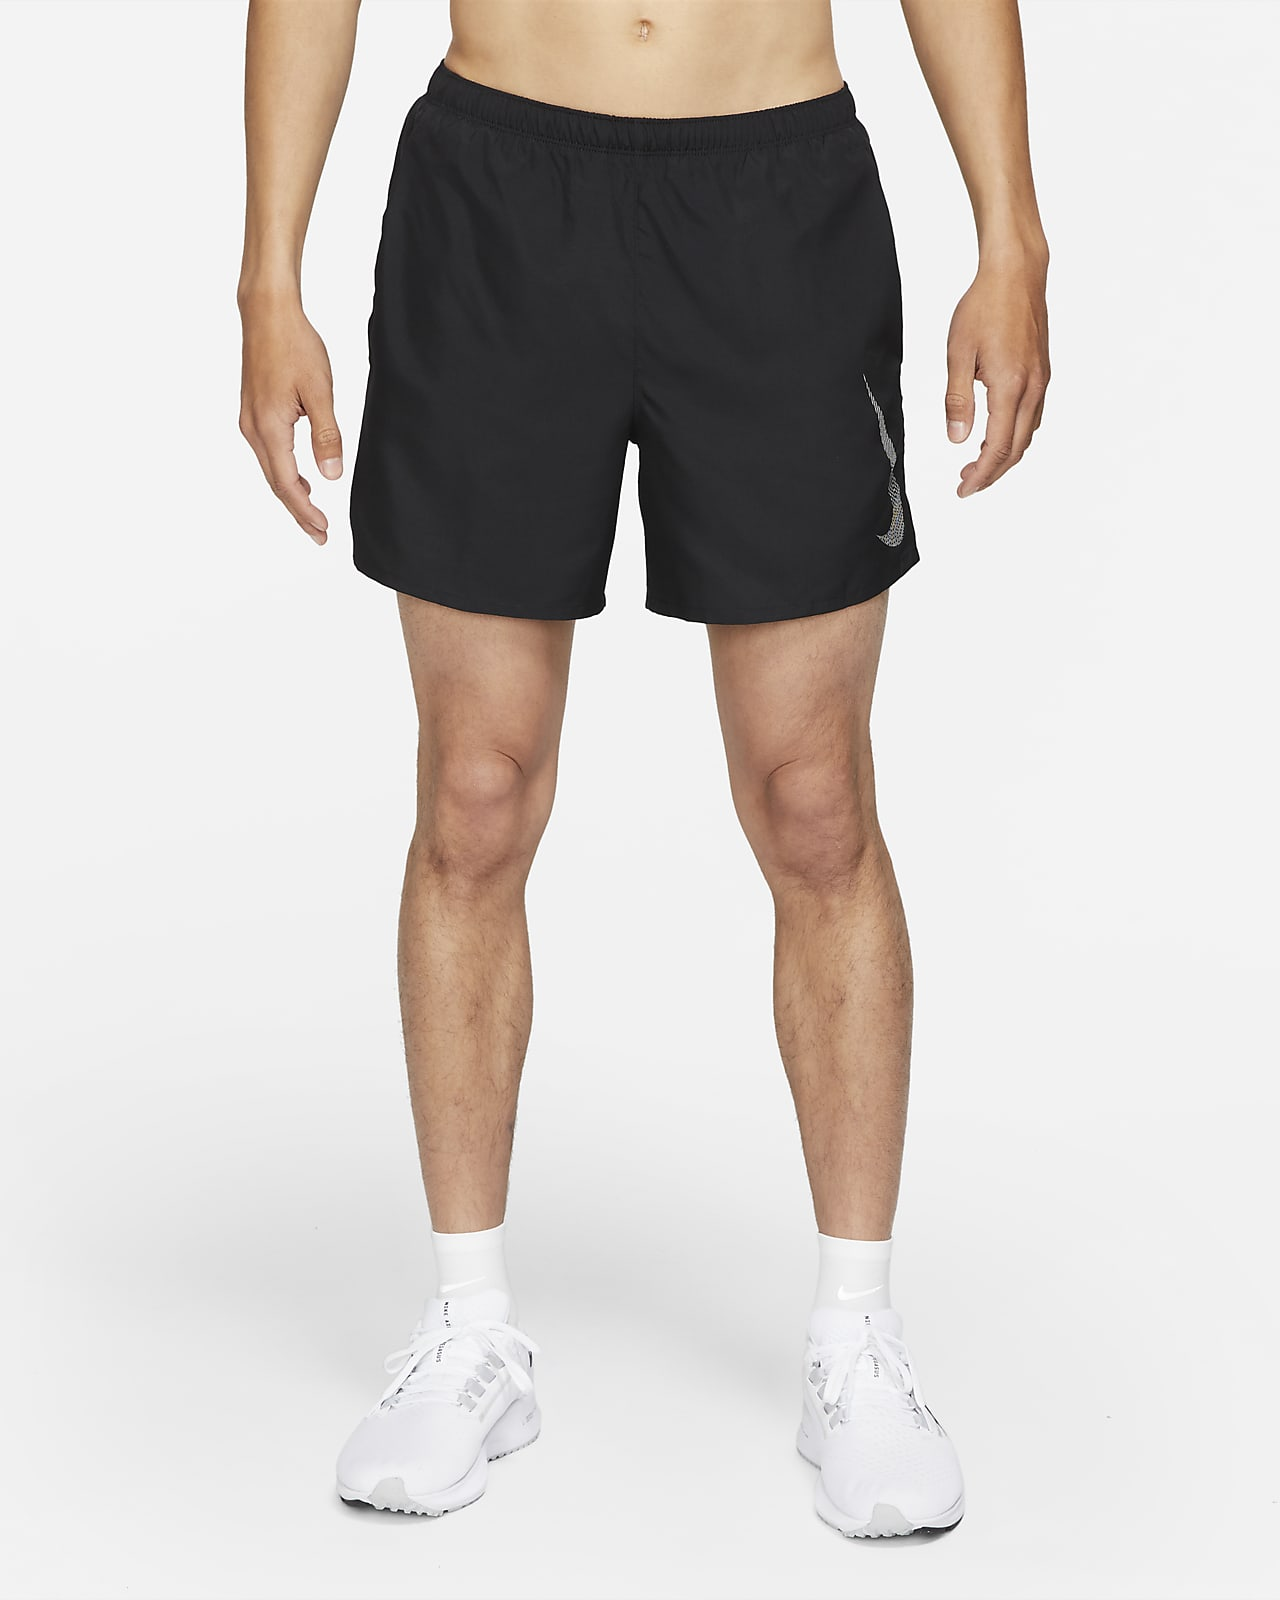 Nike Dri-FIT Run Division Challenger Men's Brief-Lined Running Shorts